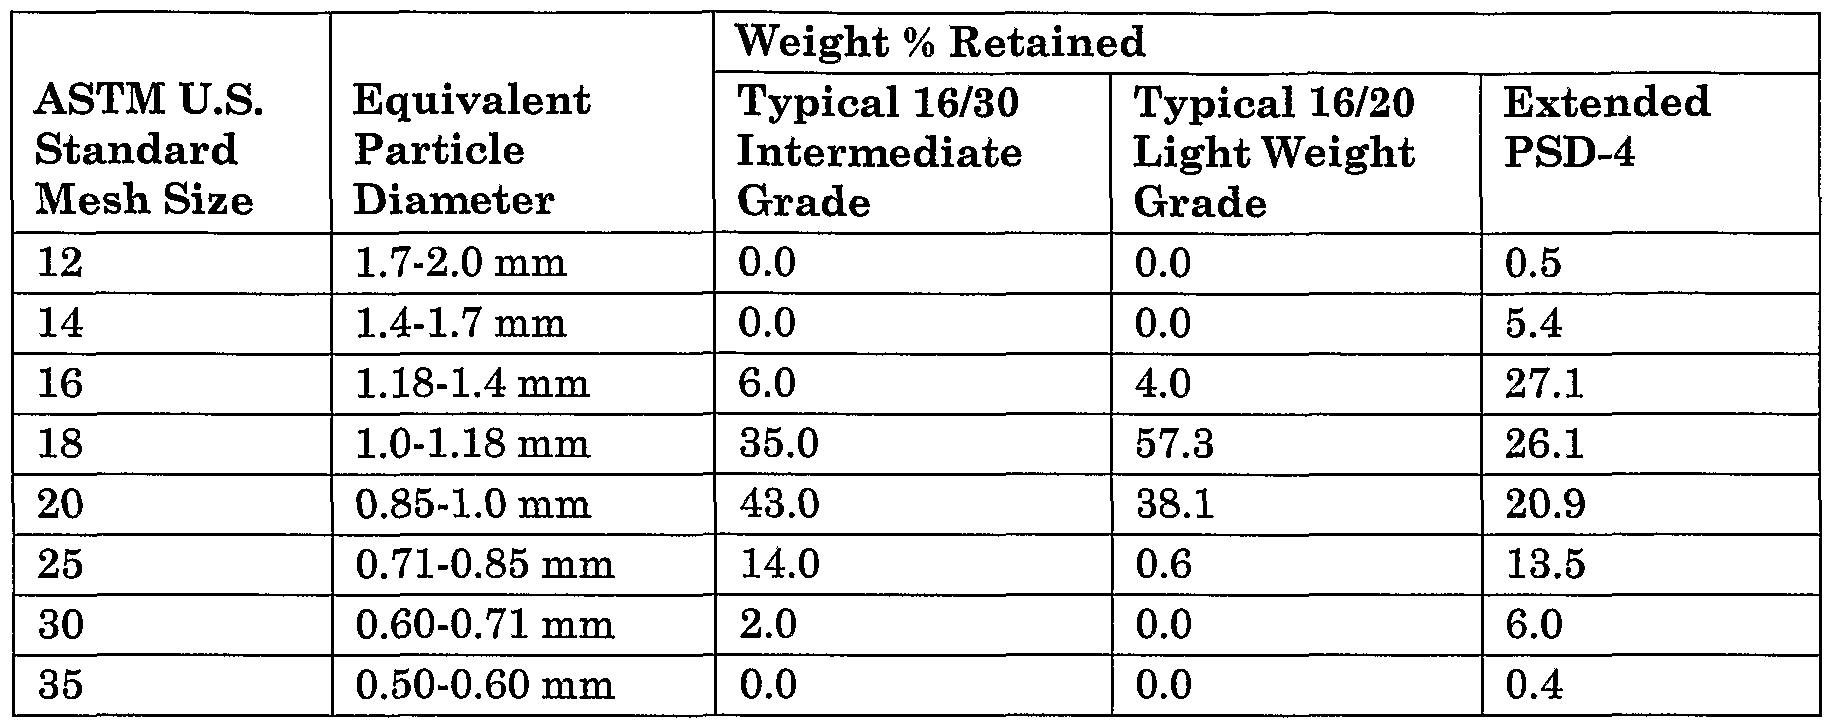 Ep1590309a2 extended particle size distribution ceramic figure imgf0000260001 nvjuhfo Image collections